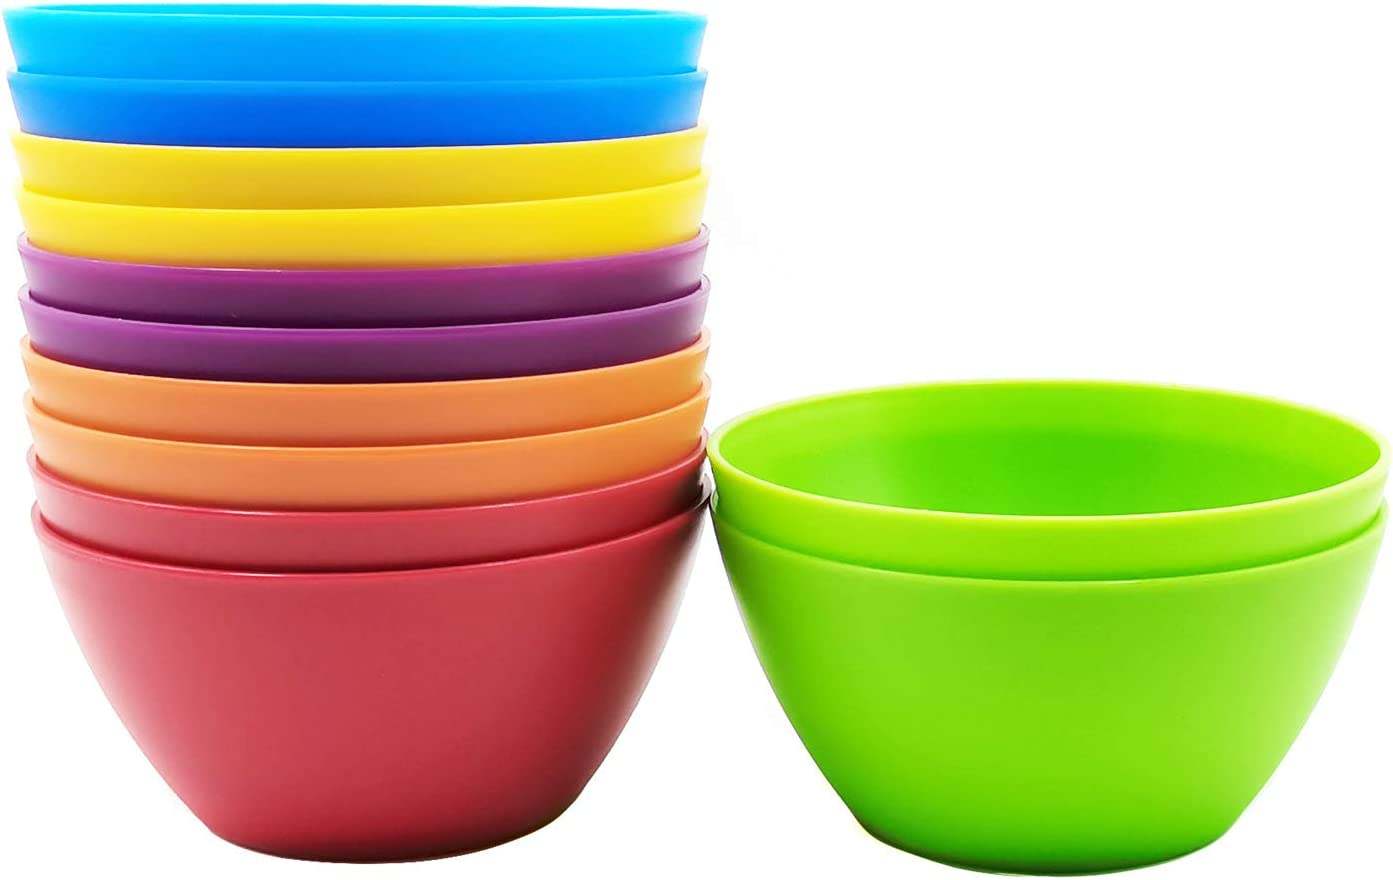 28-ounce Plastic Bowls for Cereal or Salad, set of 12 in 6 Assorted Colors | Microwave/Dishwasher Safe, BPA Free